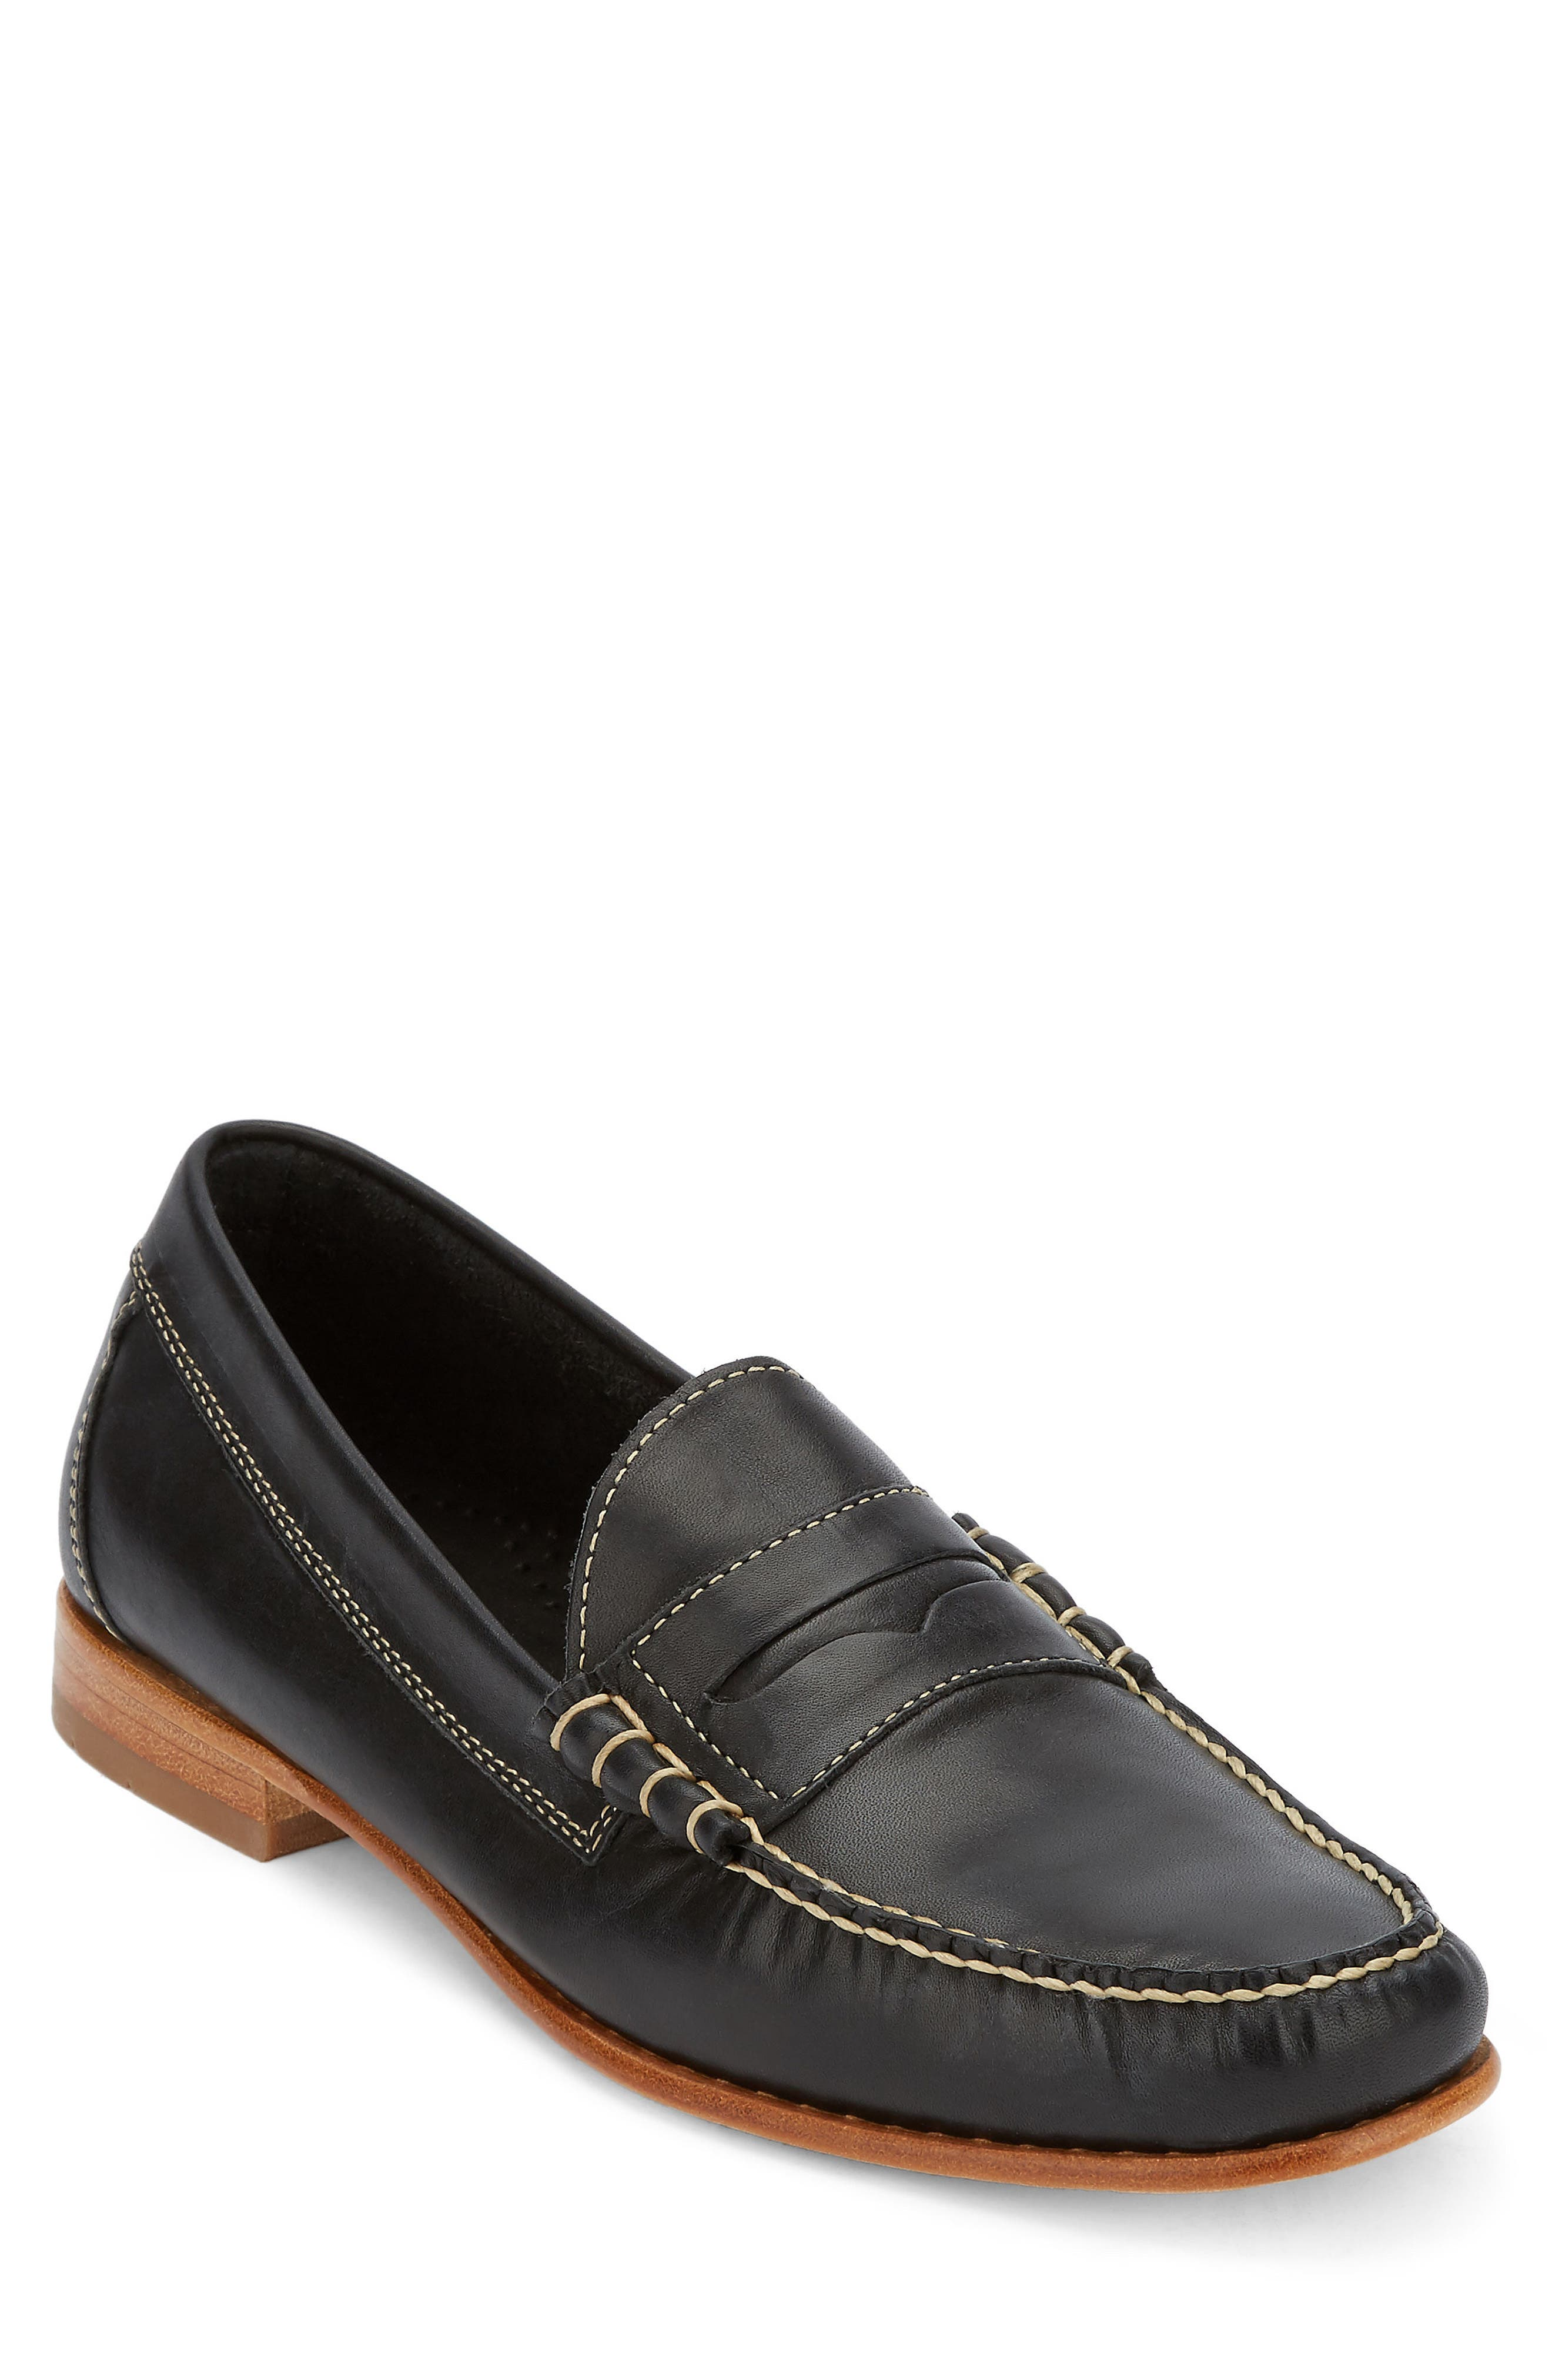 Weejuns Lambert Penny Loafer, Main, color, 001